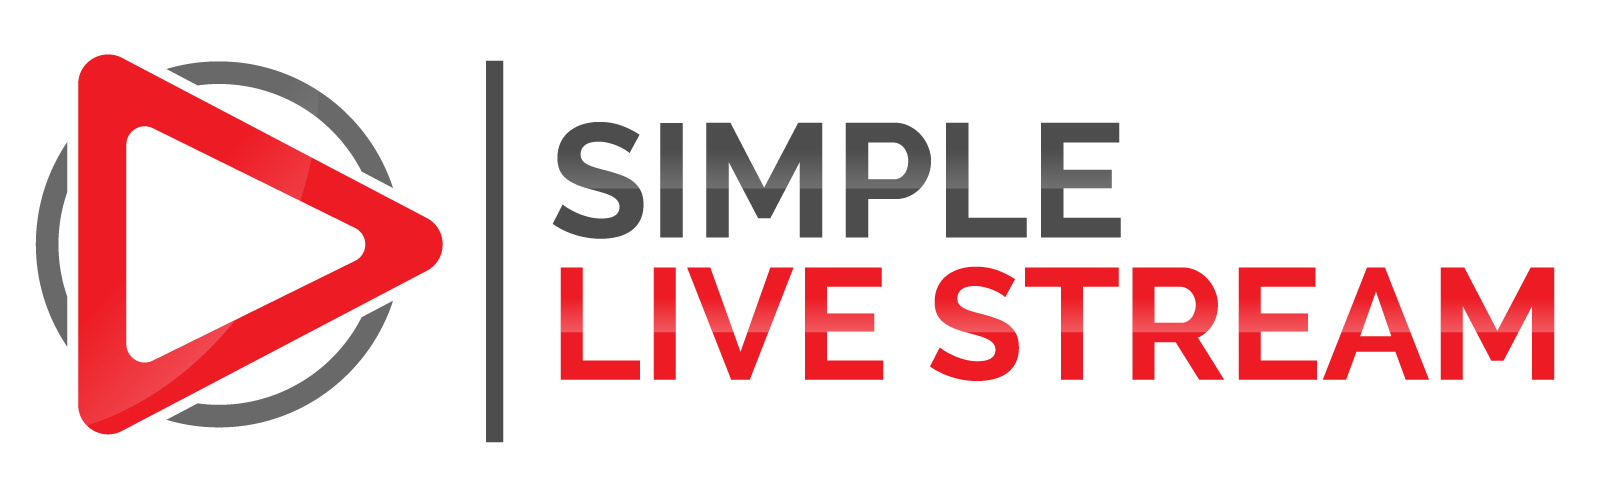 Simplelivestream